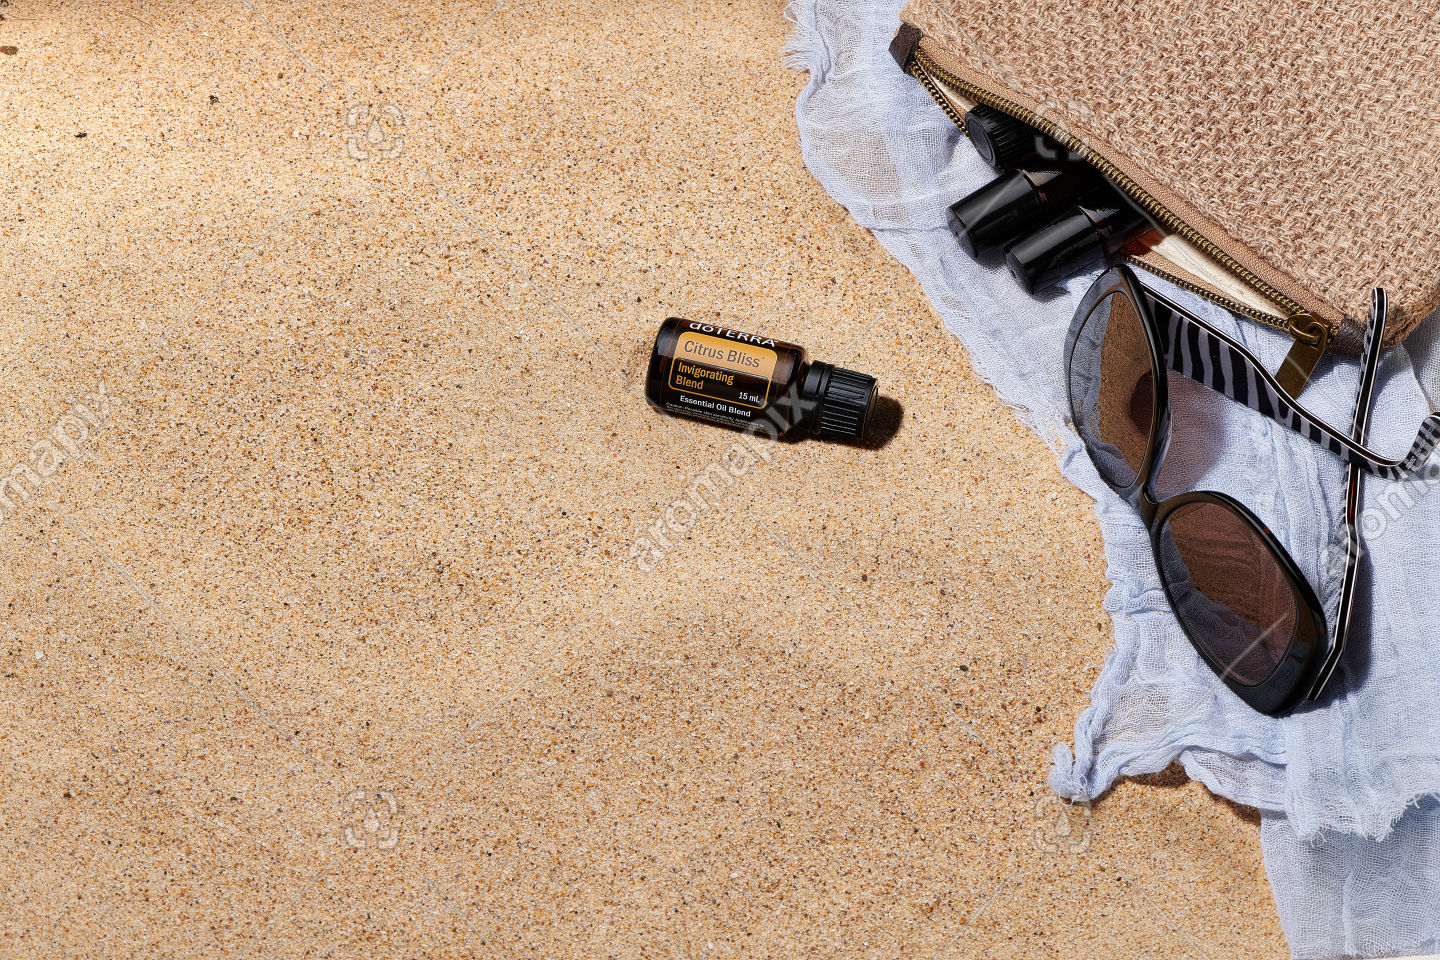 doTERRA Citrus Bliss with accessories on sand